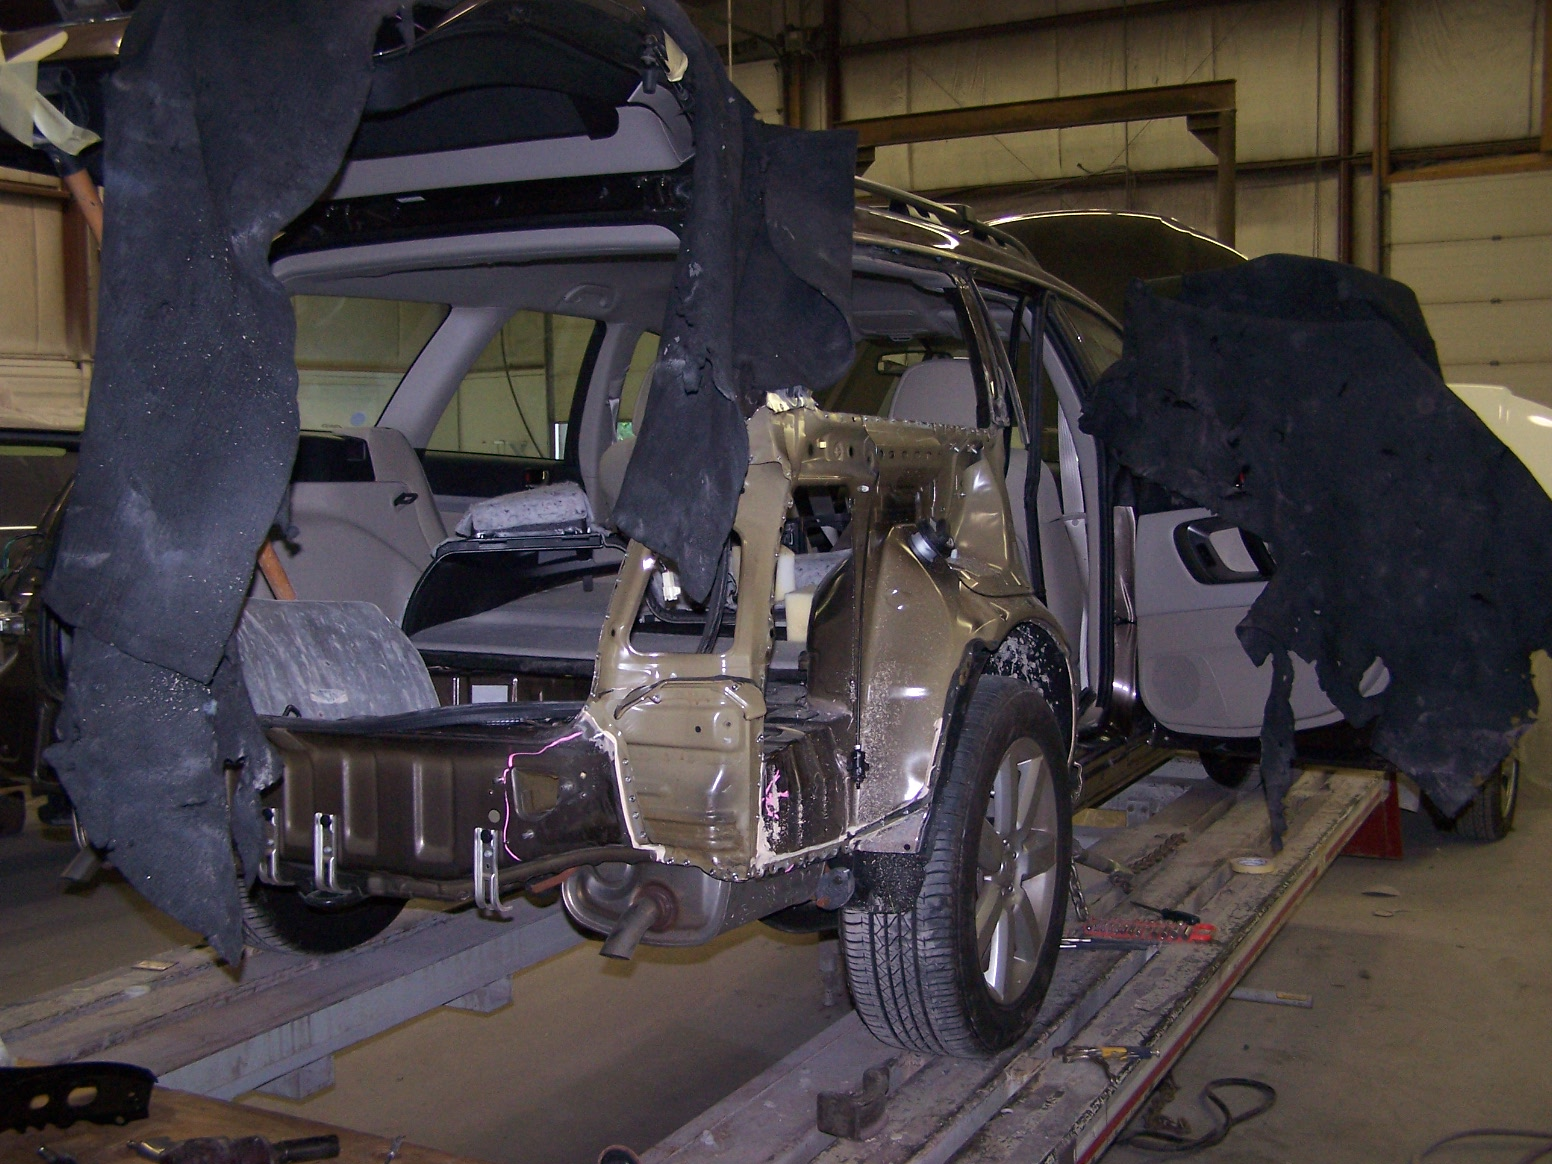 Fine Lines Collision Repair Home At Electronics Center Inc We Specialize In Industrial Handle All Aspects Of Insurance Claims And Direct Programs For Most Major Companies